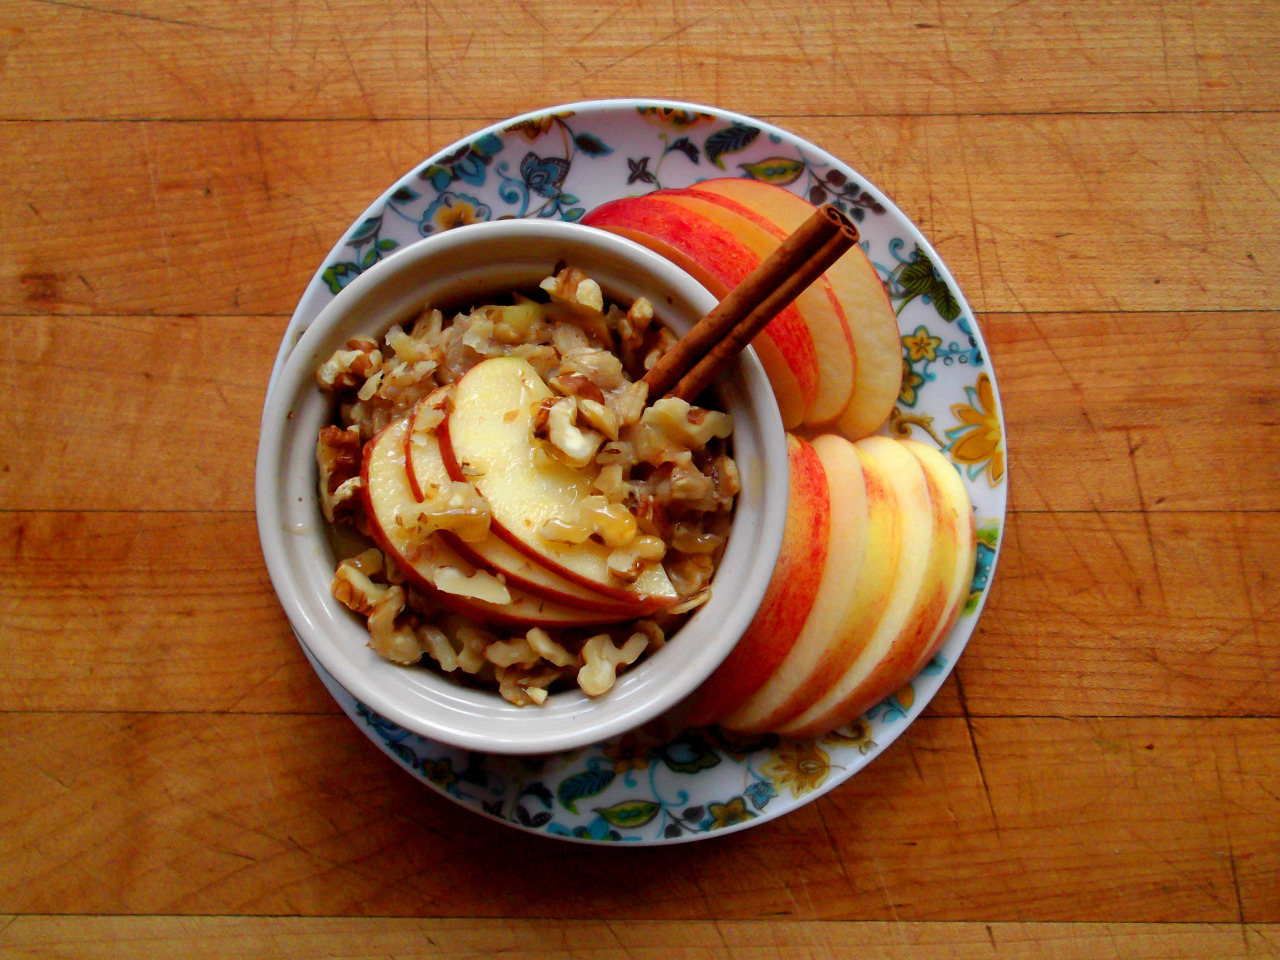 Snacks for weight loss - Apple chunks, chopped walnuts and cinnamon